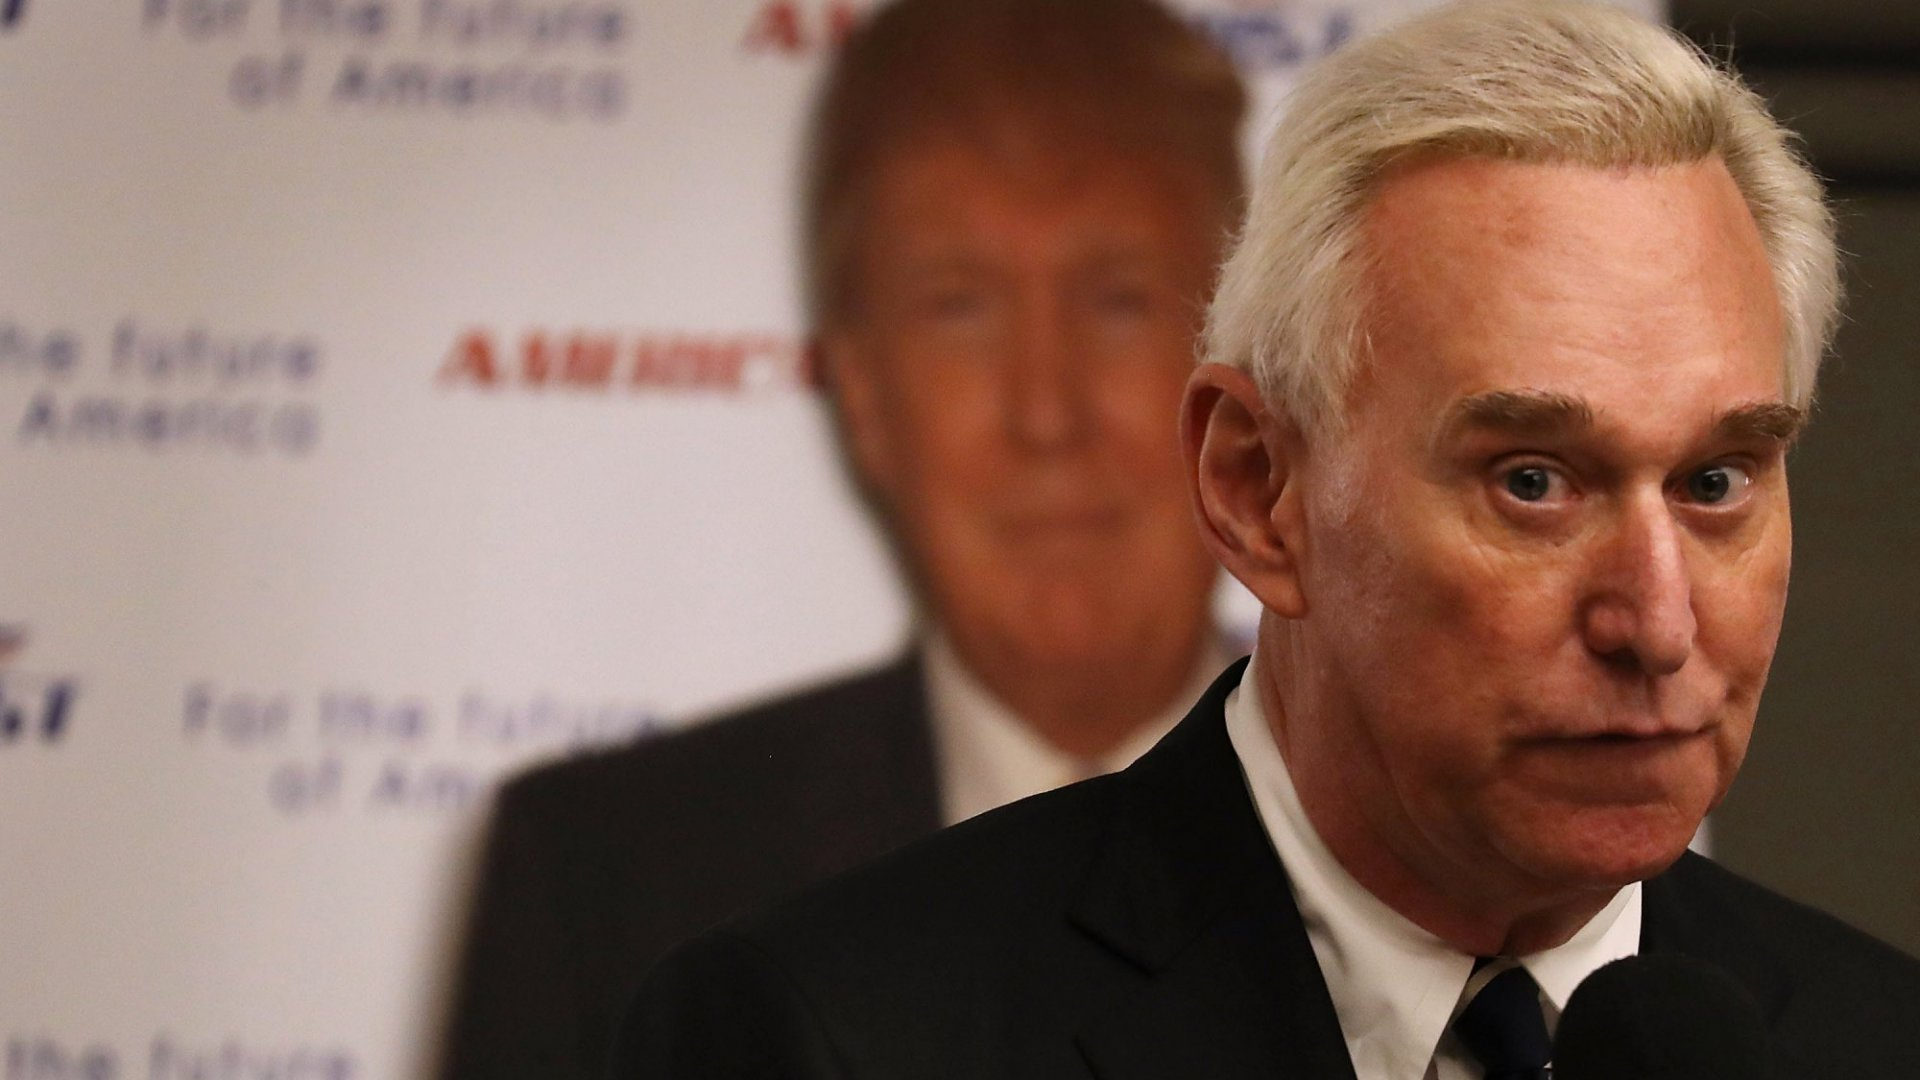 Roger Stone, who was involved with Nixon's, Reagan's, and Trump's presidential campaigns, is the focus of a boycott against a cannabis business conference that booked Stone as a keynote speaker.